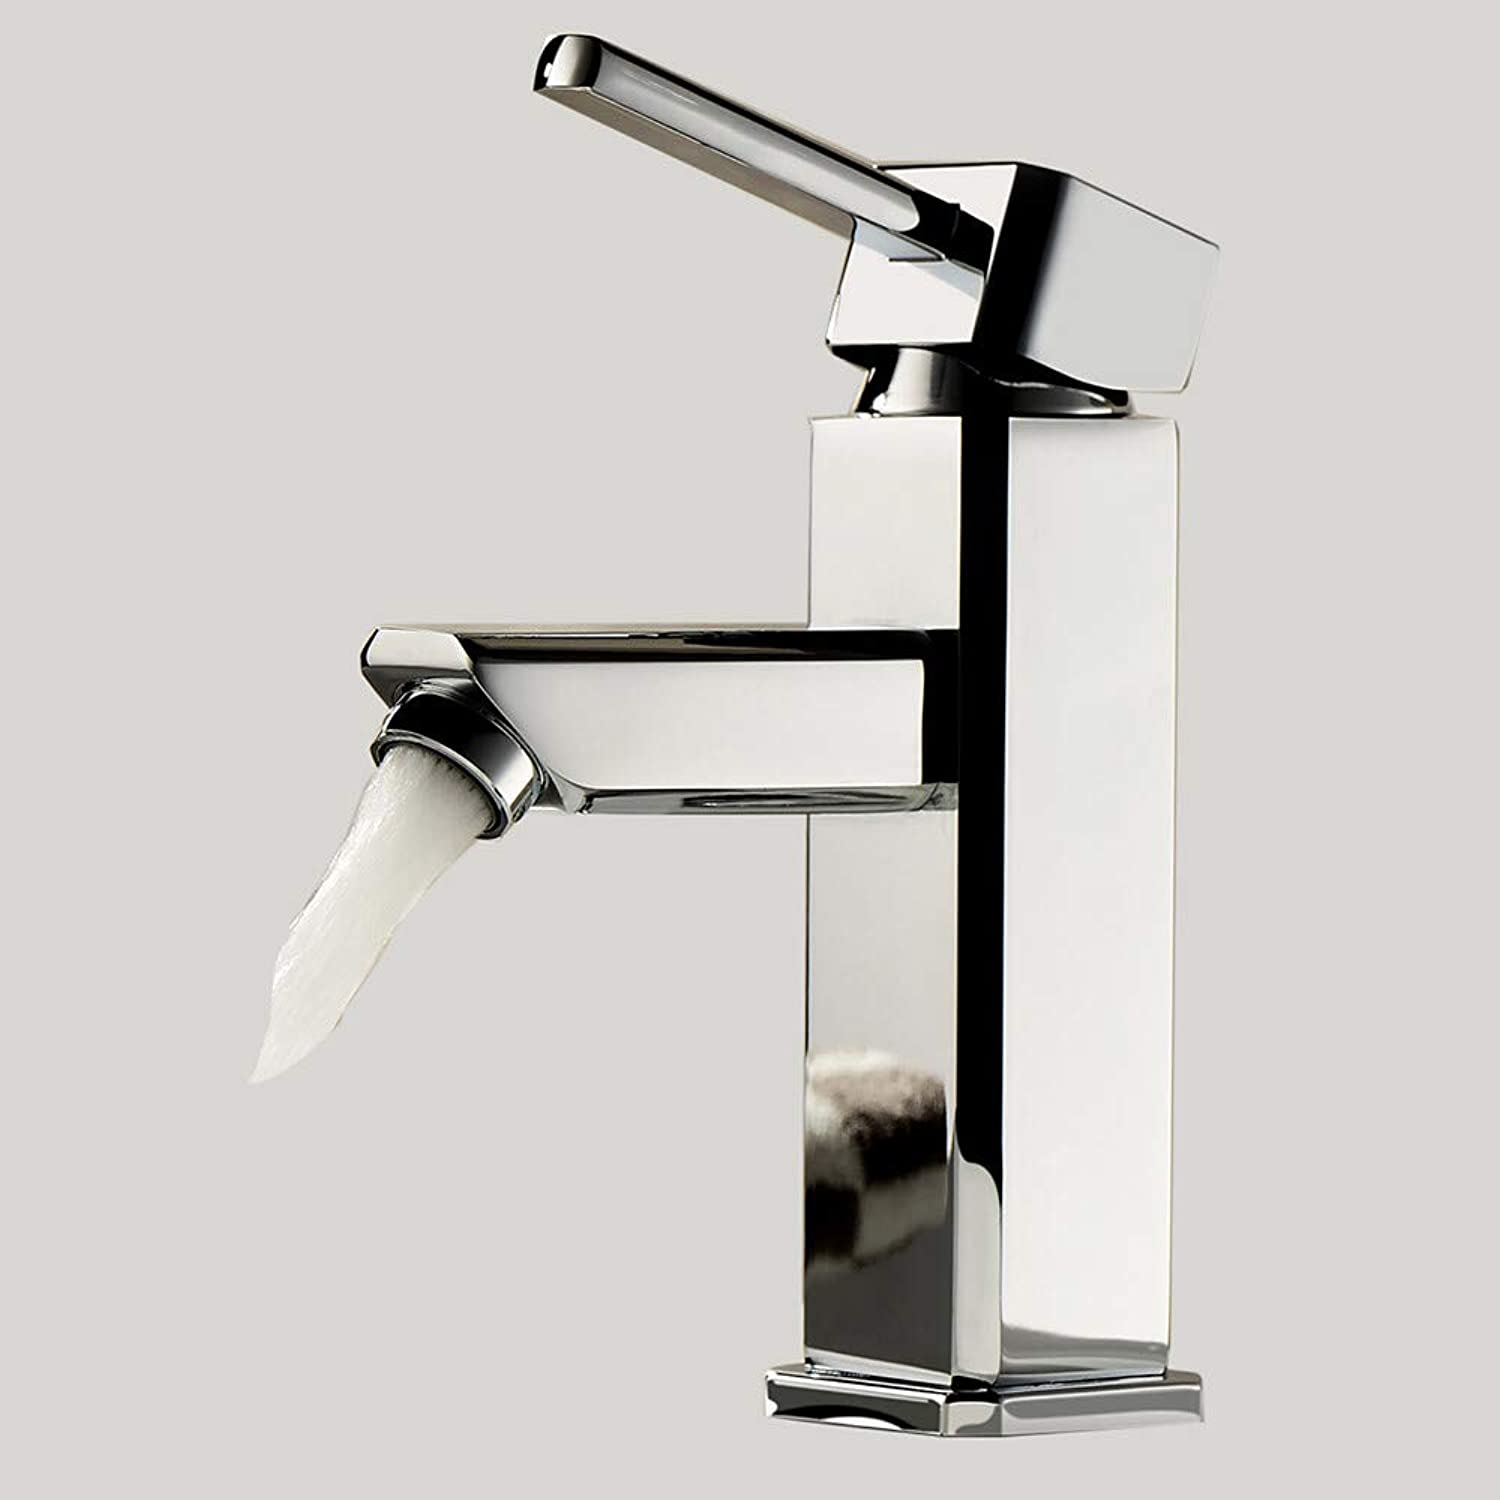 BF-Bathroom Sink Faucet - redatable Chrome Centerset One Hole Single Handle One Hole,1